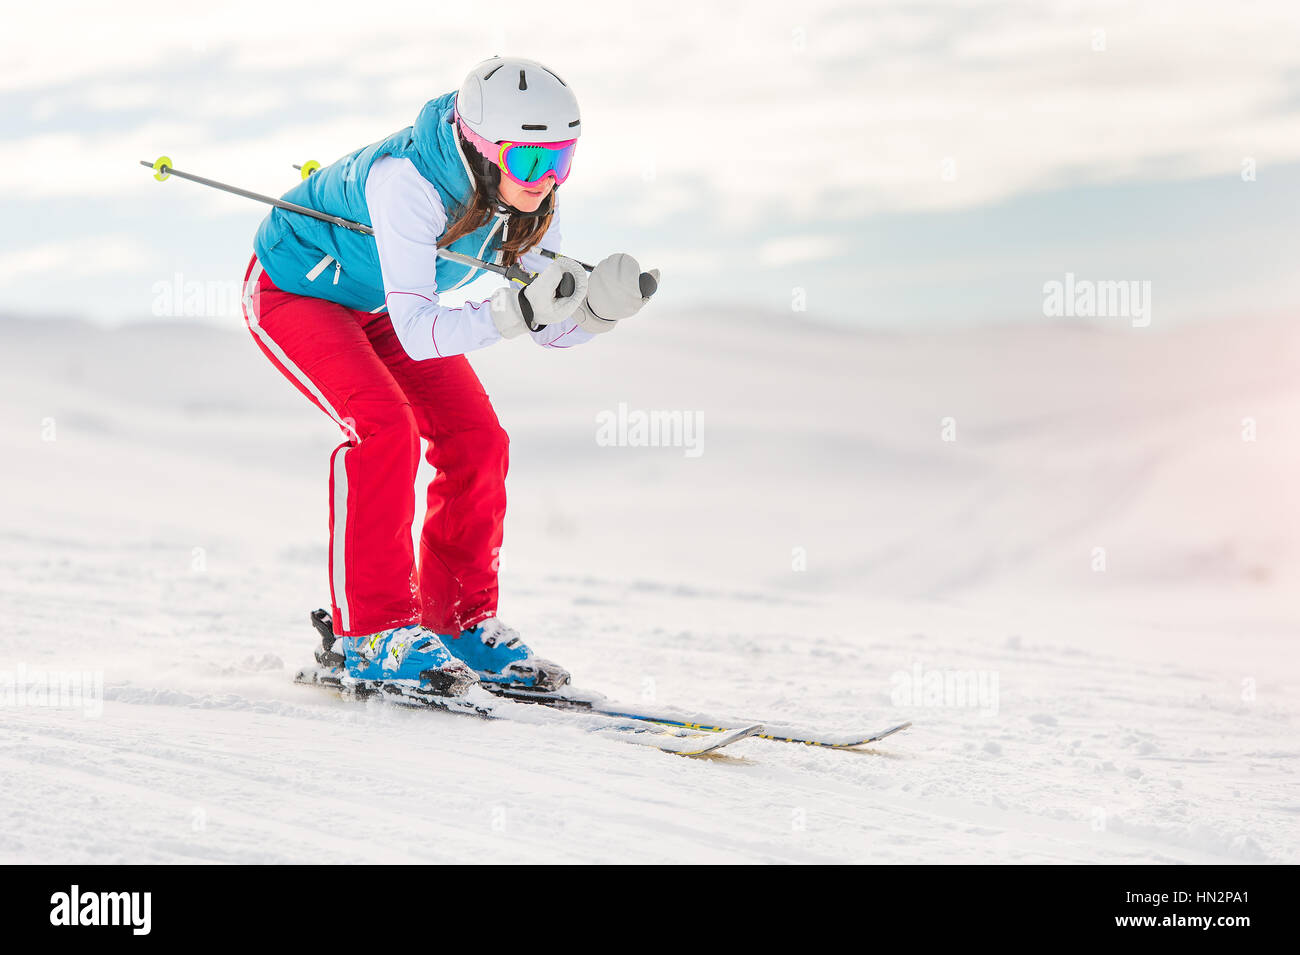 Girl woman skier in downhill position - Stock Image